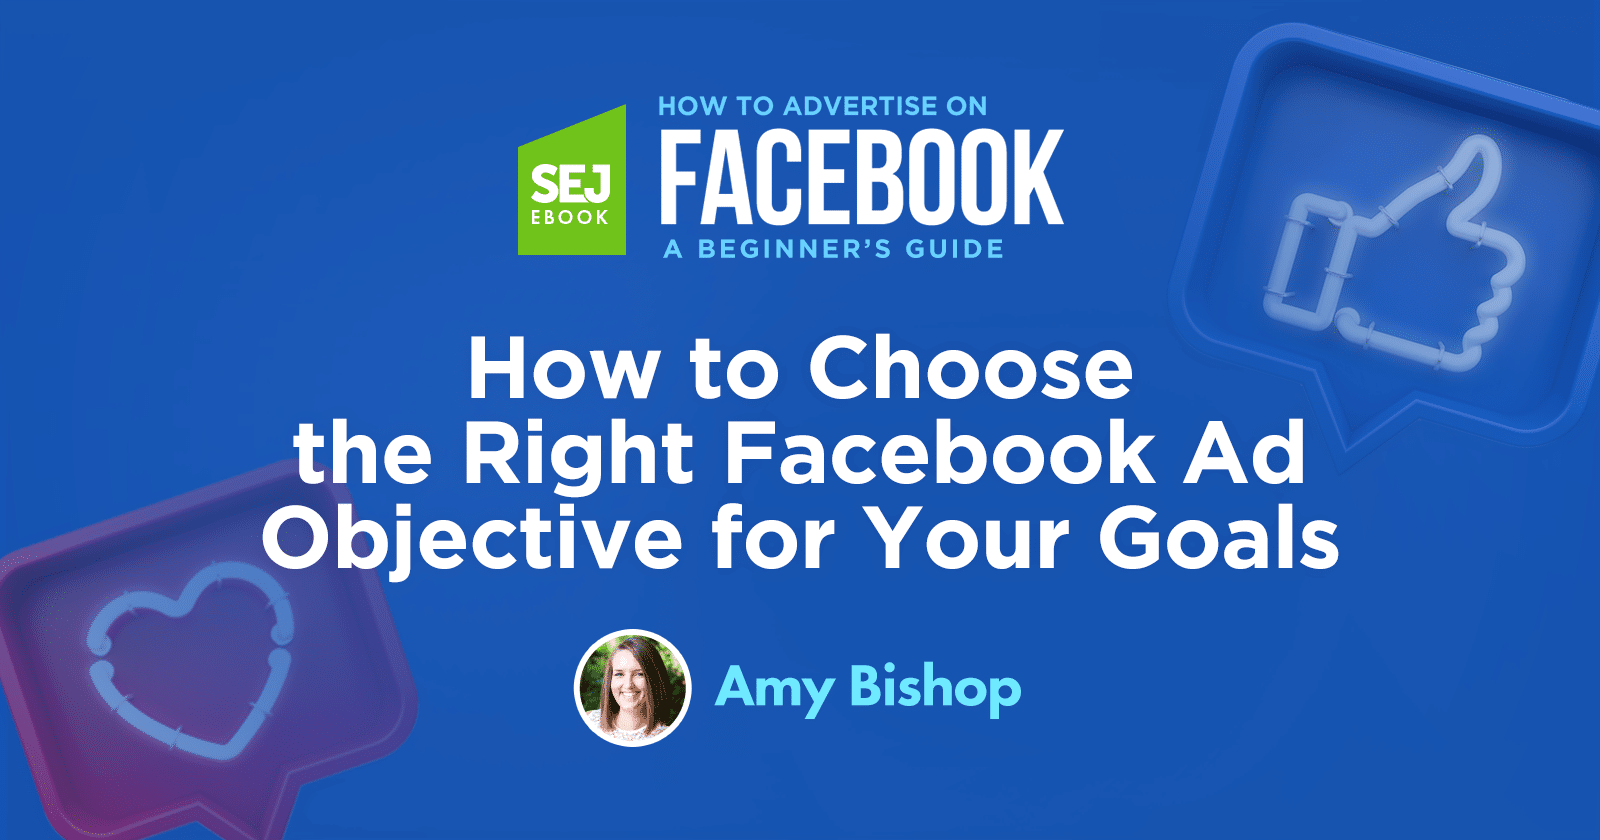 How to Choose the Right Facebook Ad Objective for Your Goals via @sejournal, @hoffman8